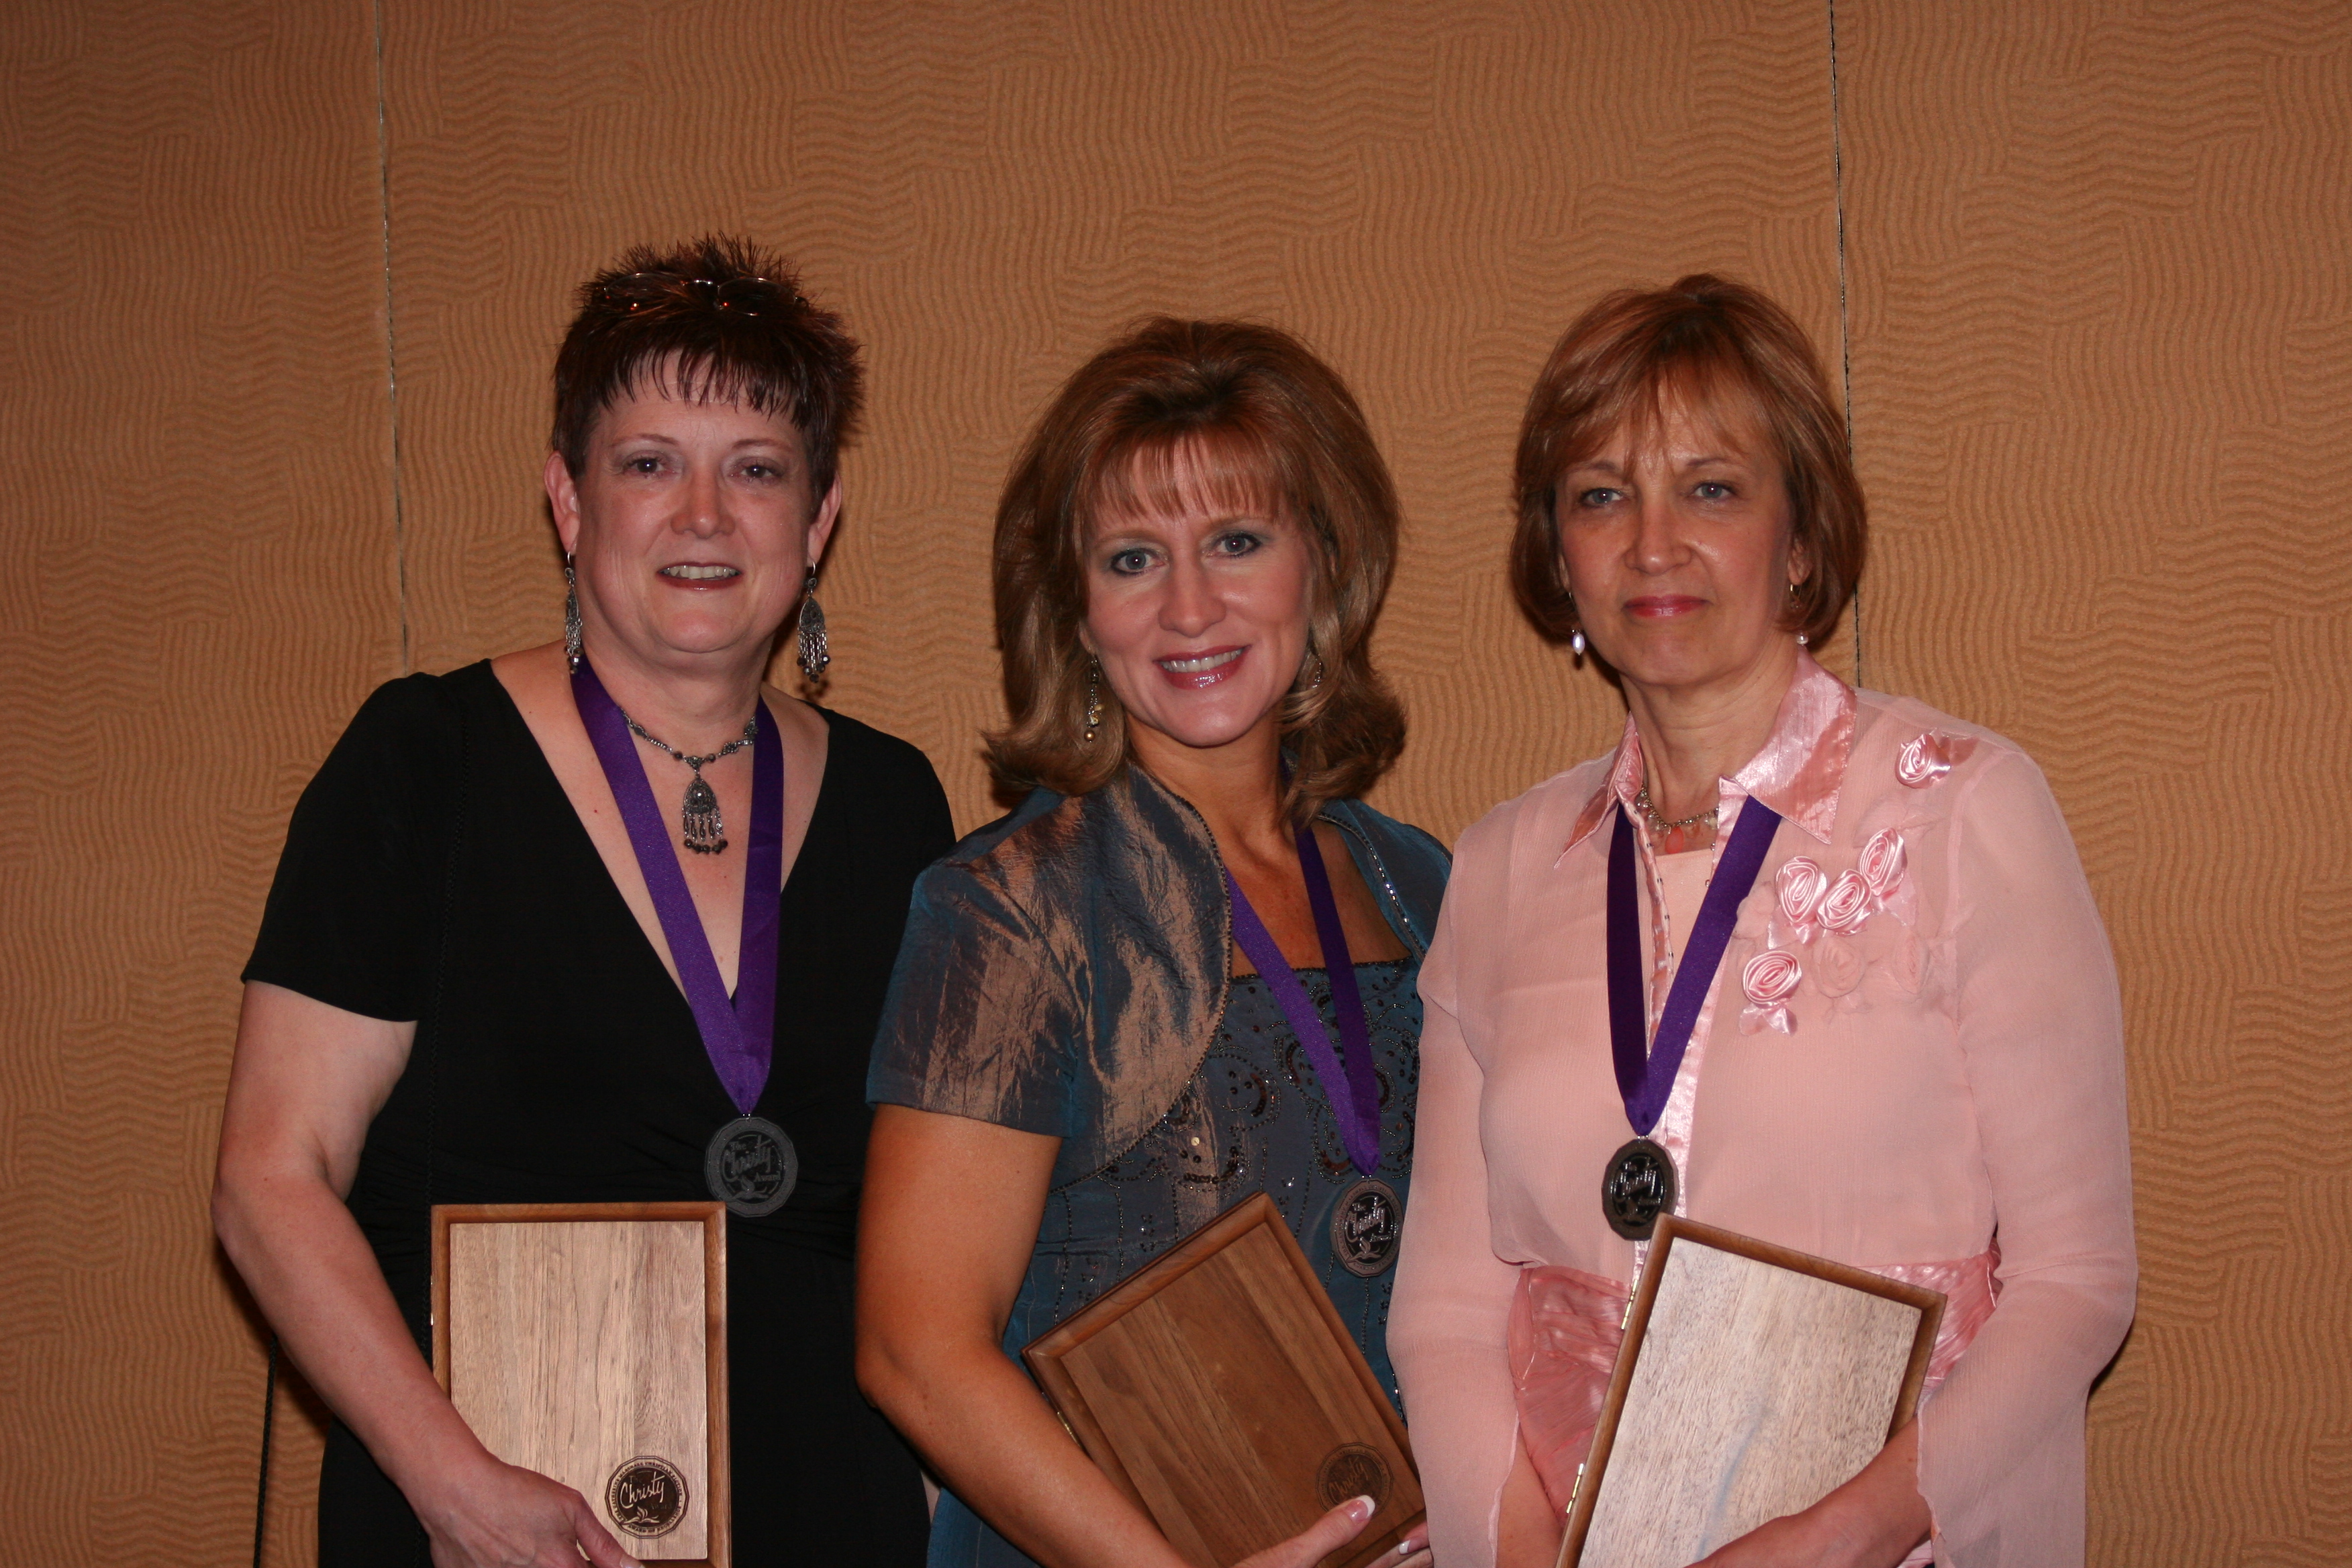 2008 Christy Award winners Shelly Beach, Tamera Alexander, Lynn Austin